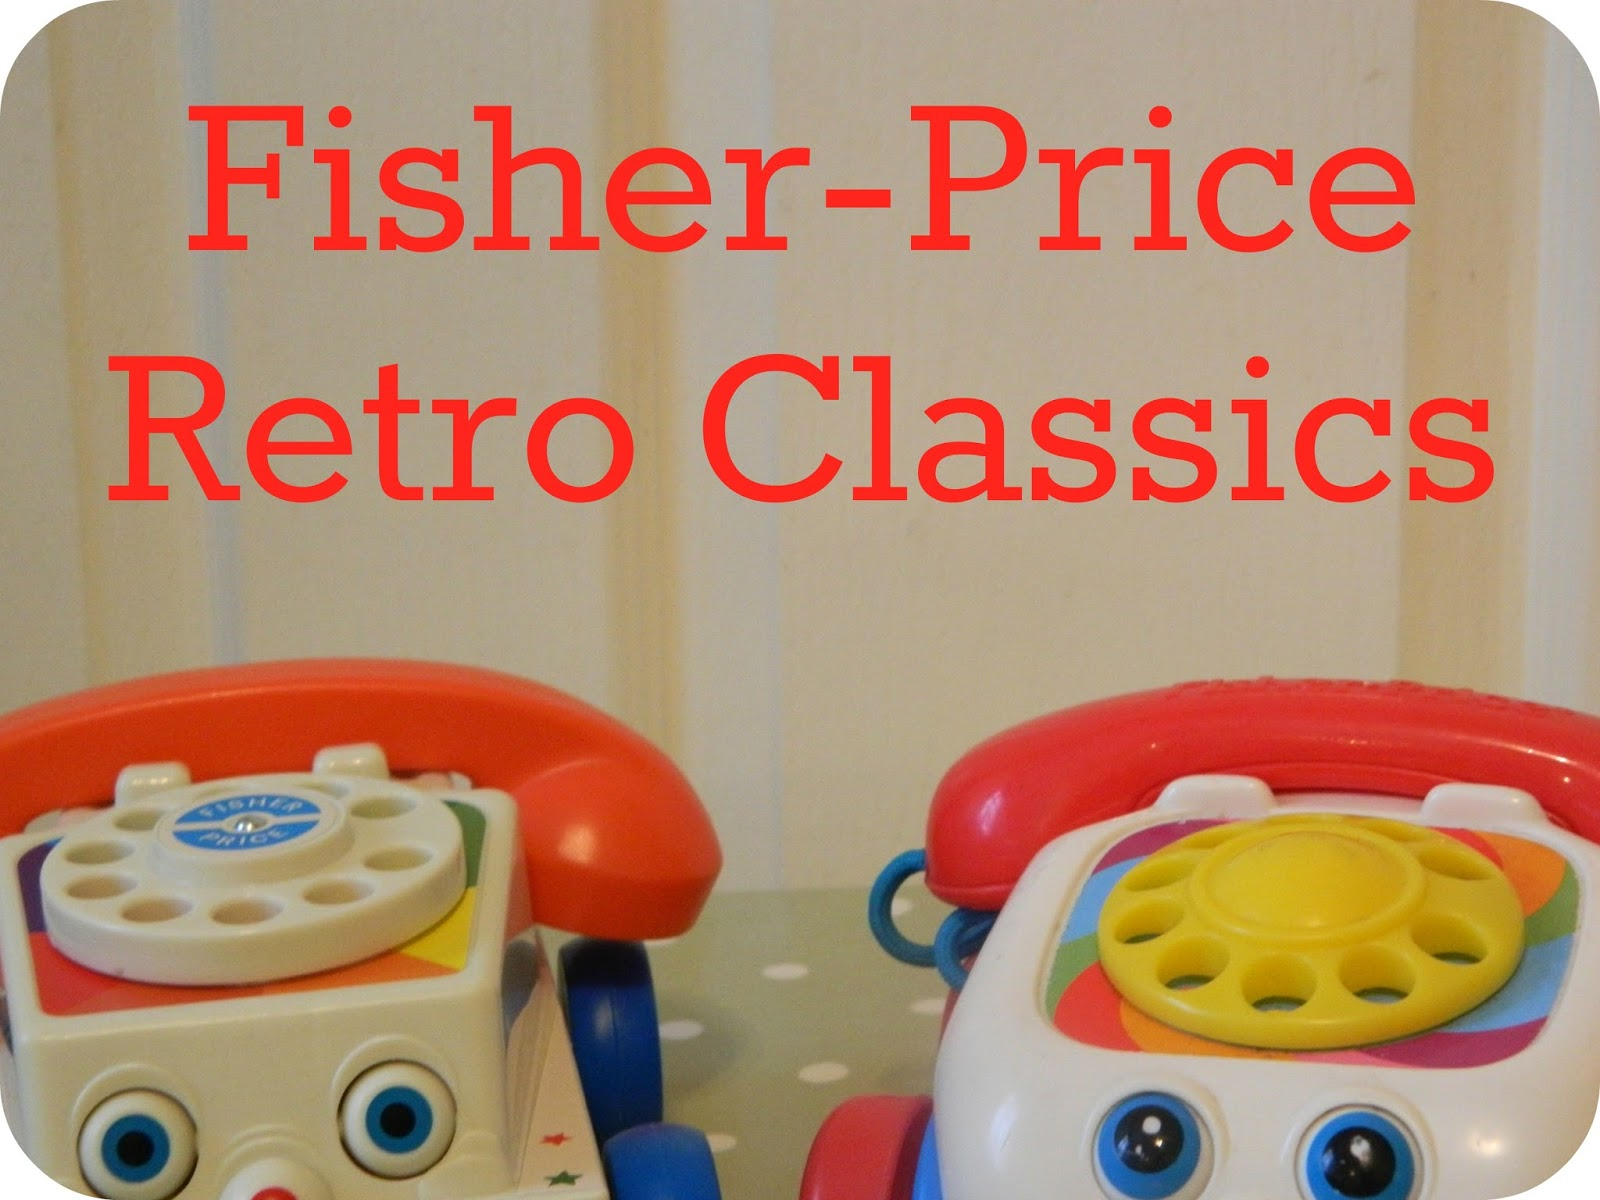 Fisher-Price Retro Classics